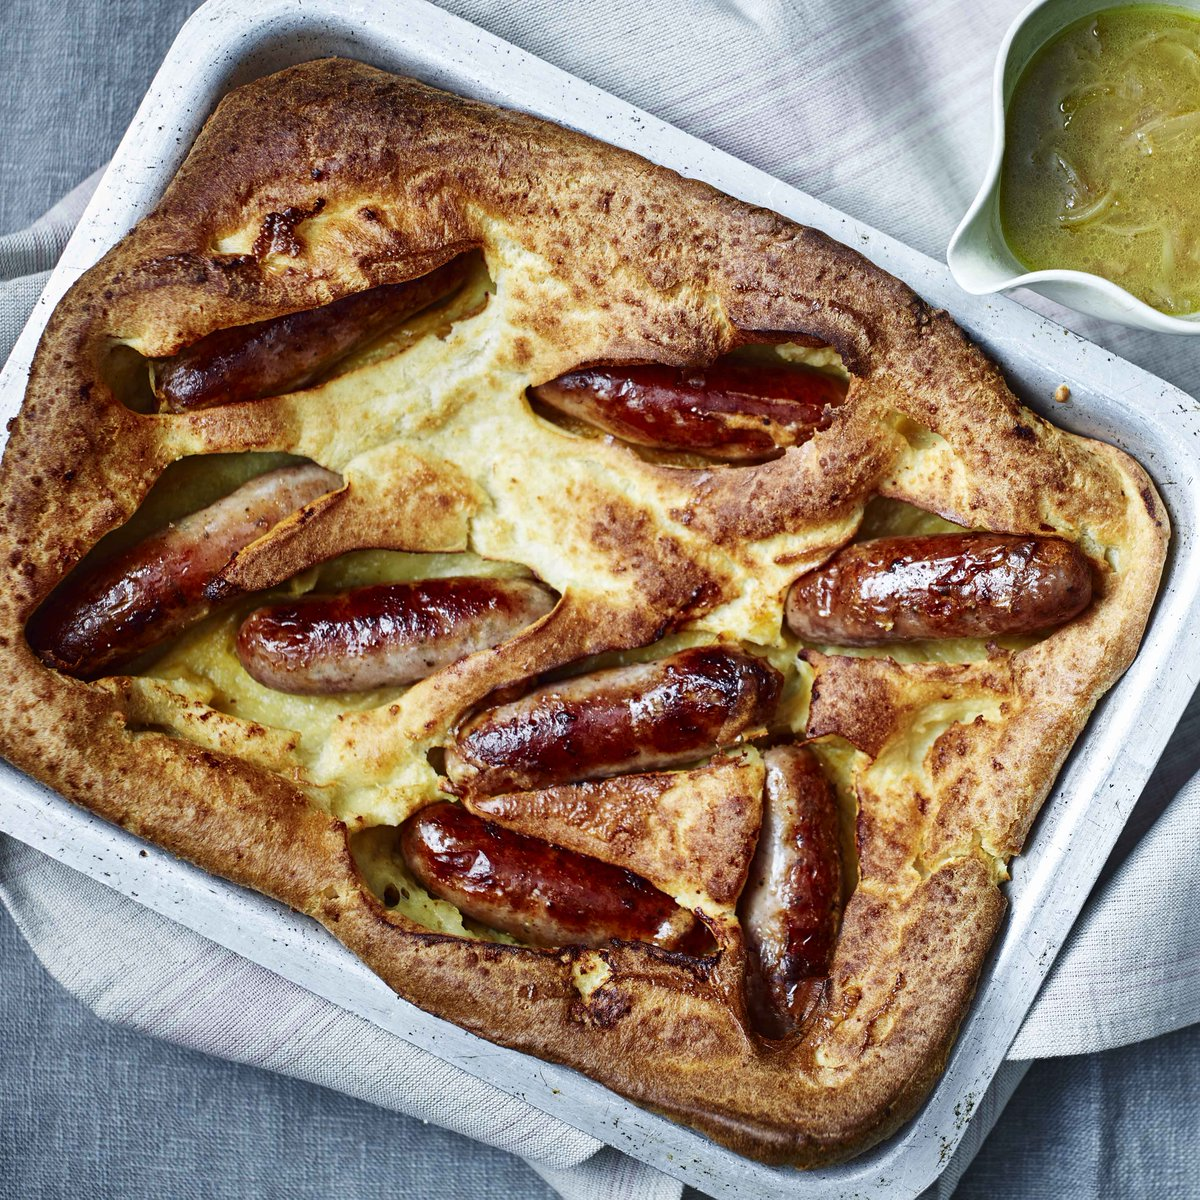 Snag one of these recipes for an easy midweek dinner https://www.bbc.com/food/collections/bangers_on_a_budget…